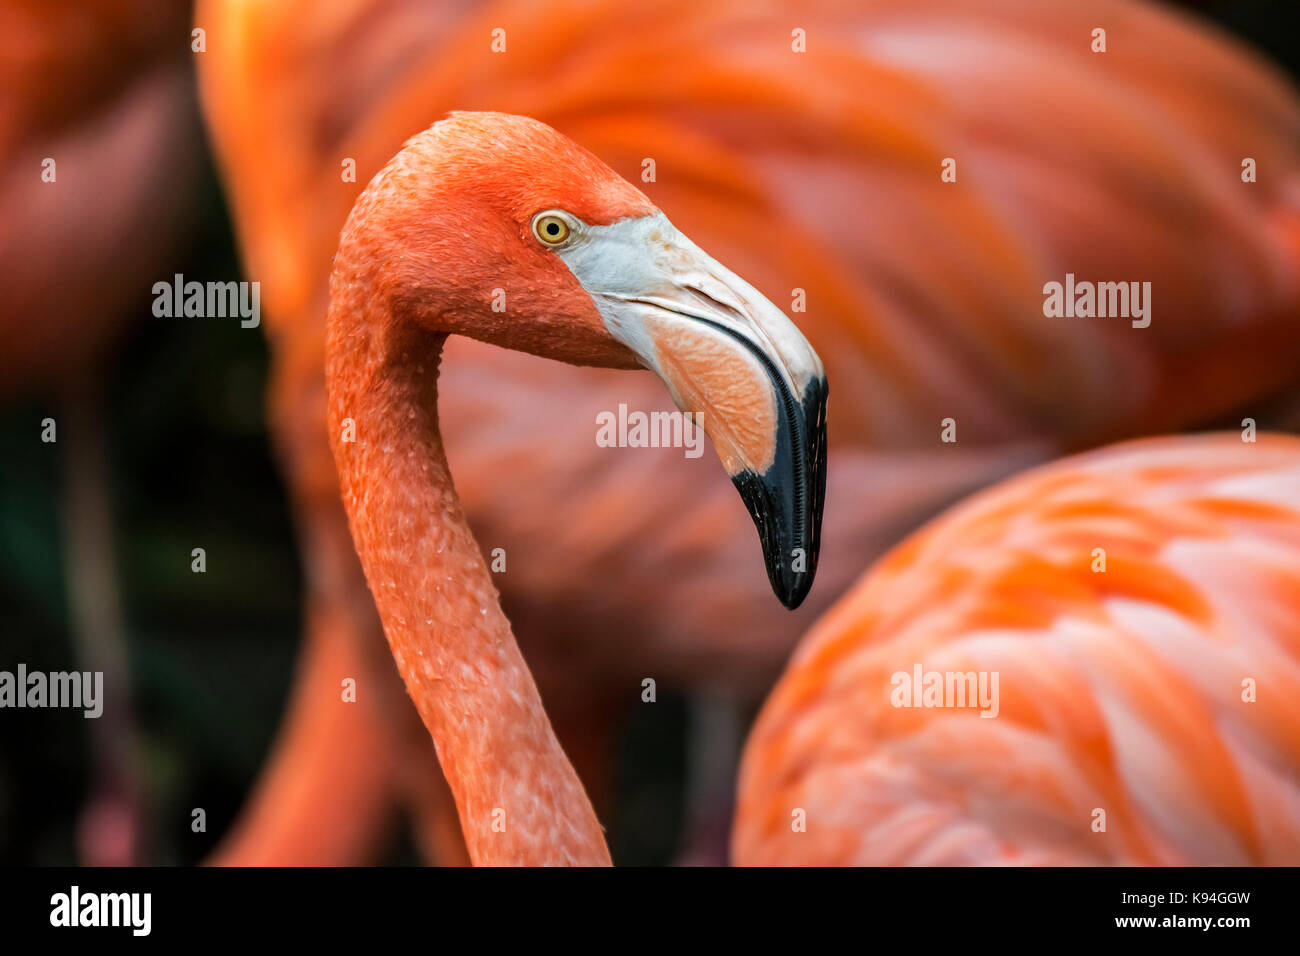 American flamingo / Caribbean flamingo (Phoenicopterus ruber) close up of head and beak among other flamingos in Stock Photo